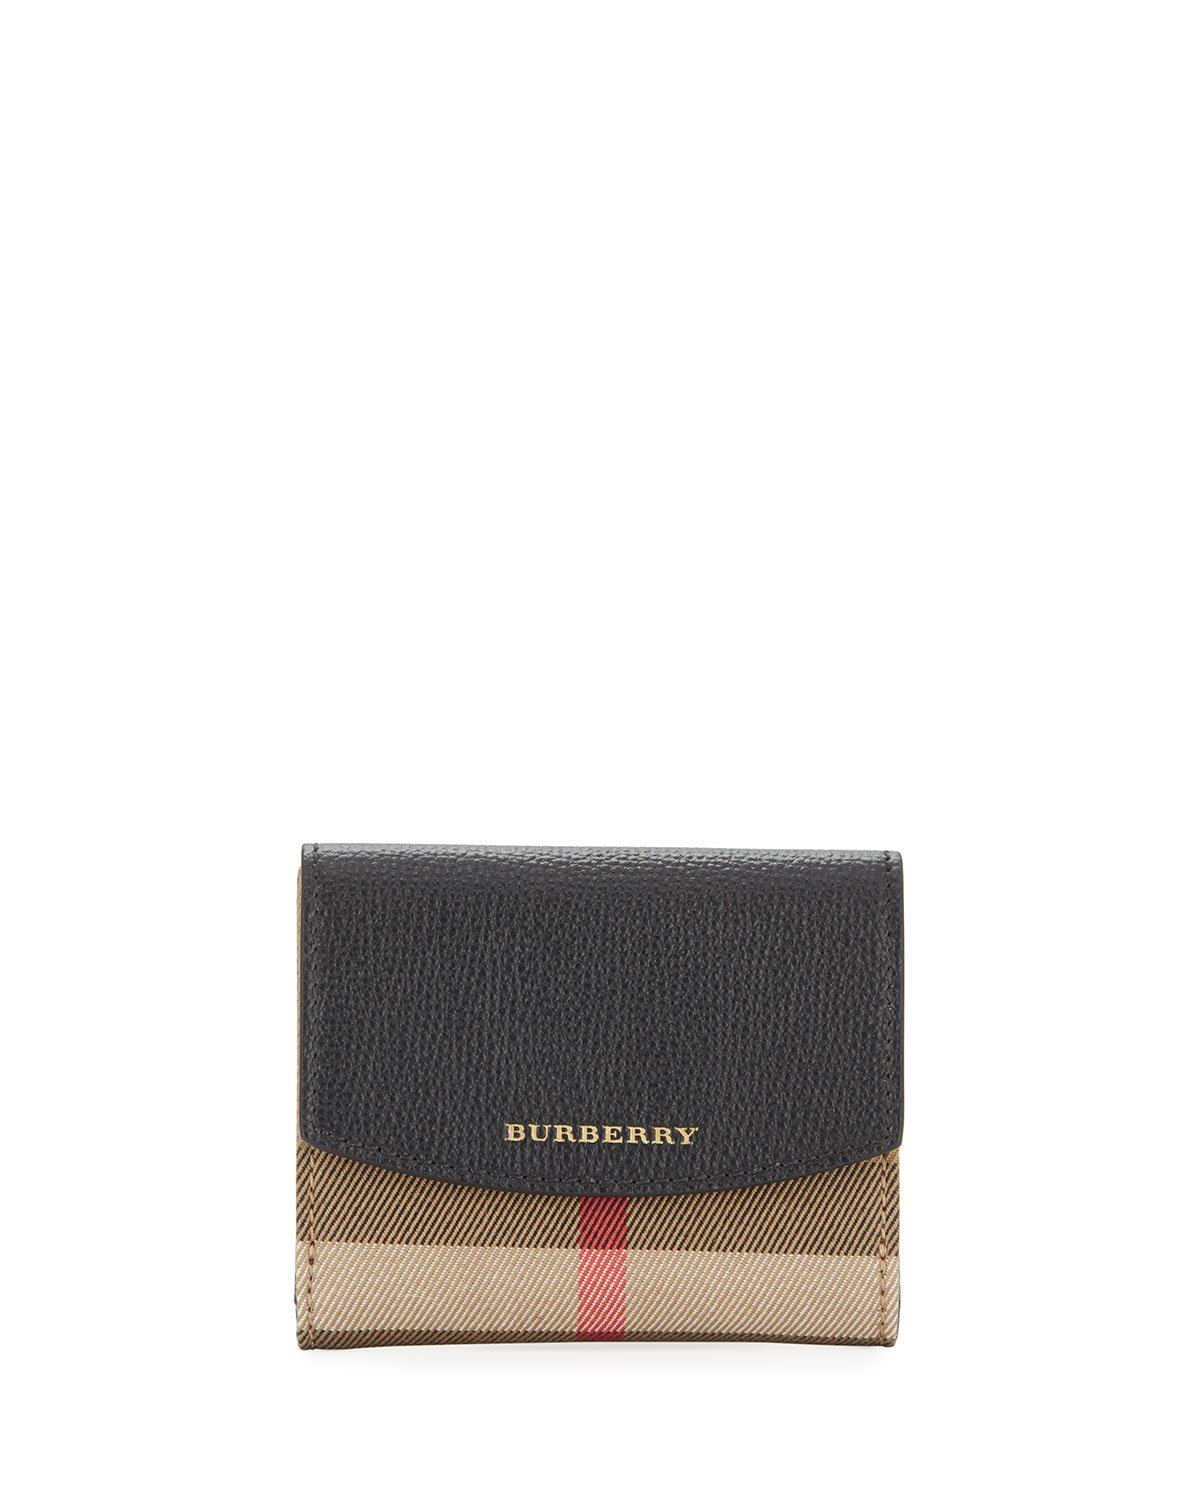 Burberry Luna Small Leather & Check French Wallet, Black